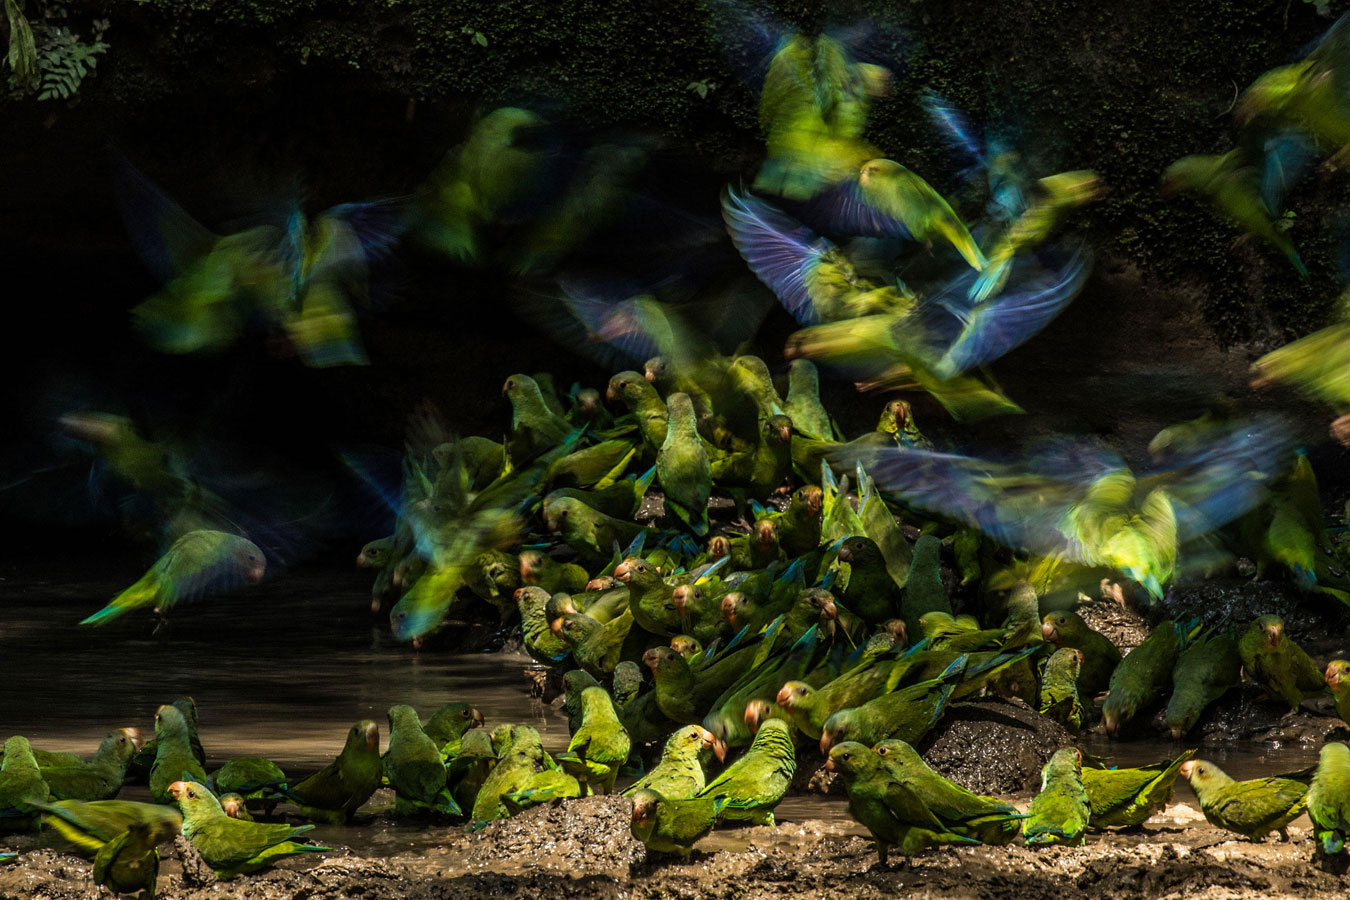 Cobalt-winged Parakeets, © Liron Gertsman, Youth Winner, Audubon Photography Awards